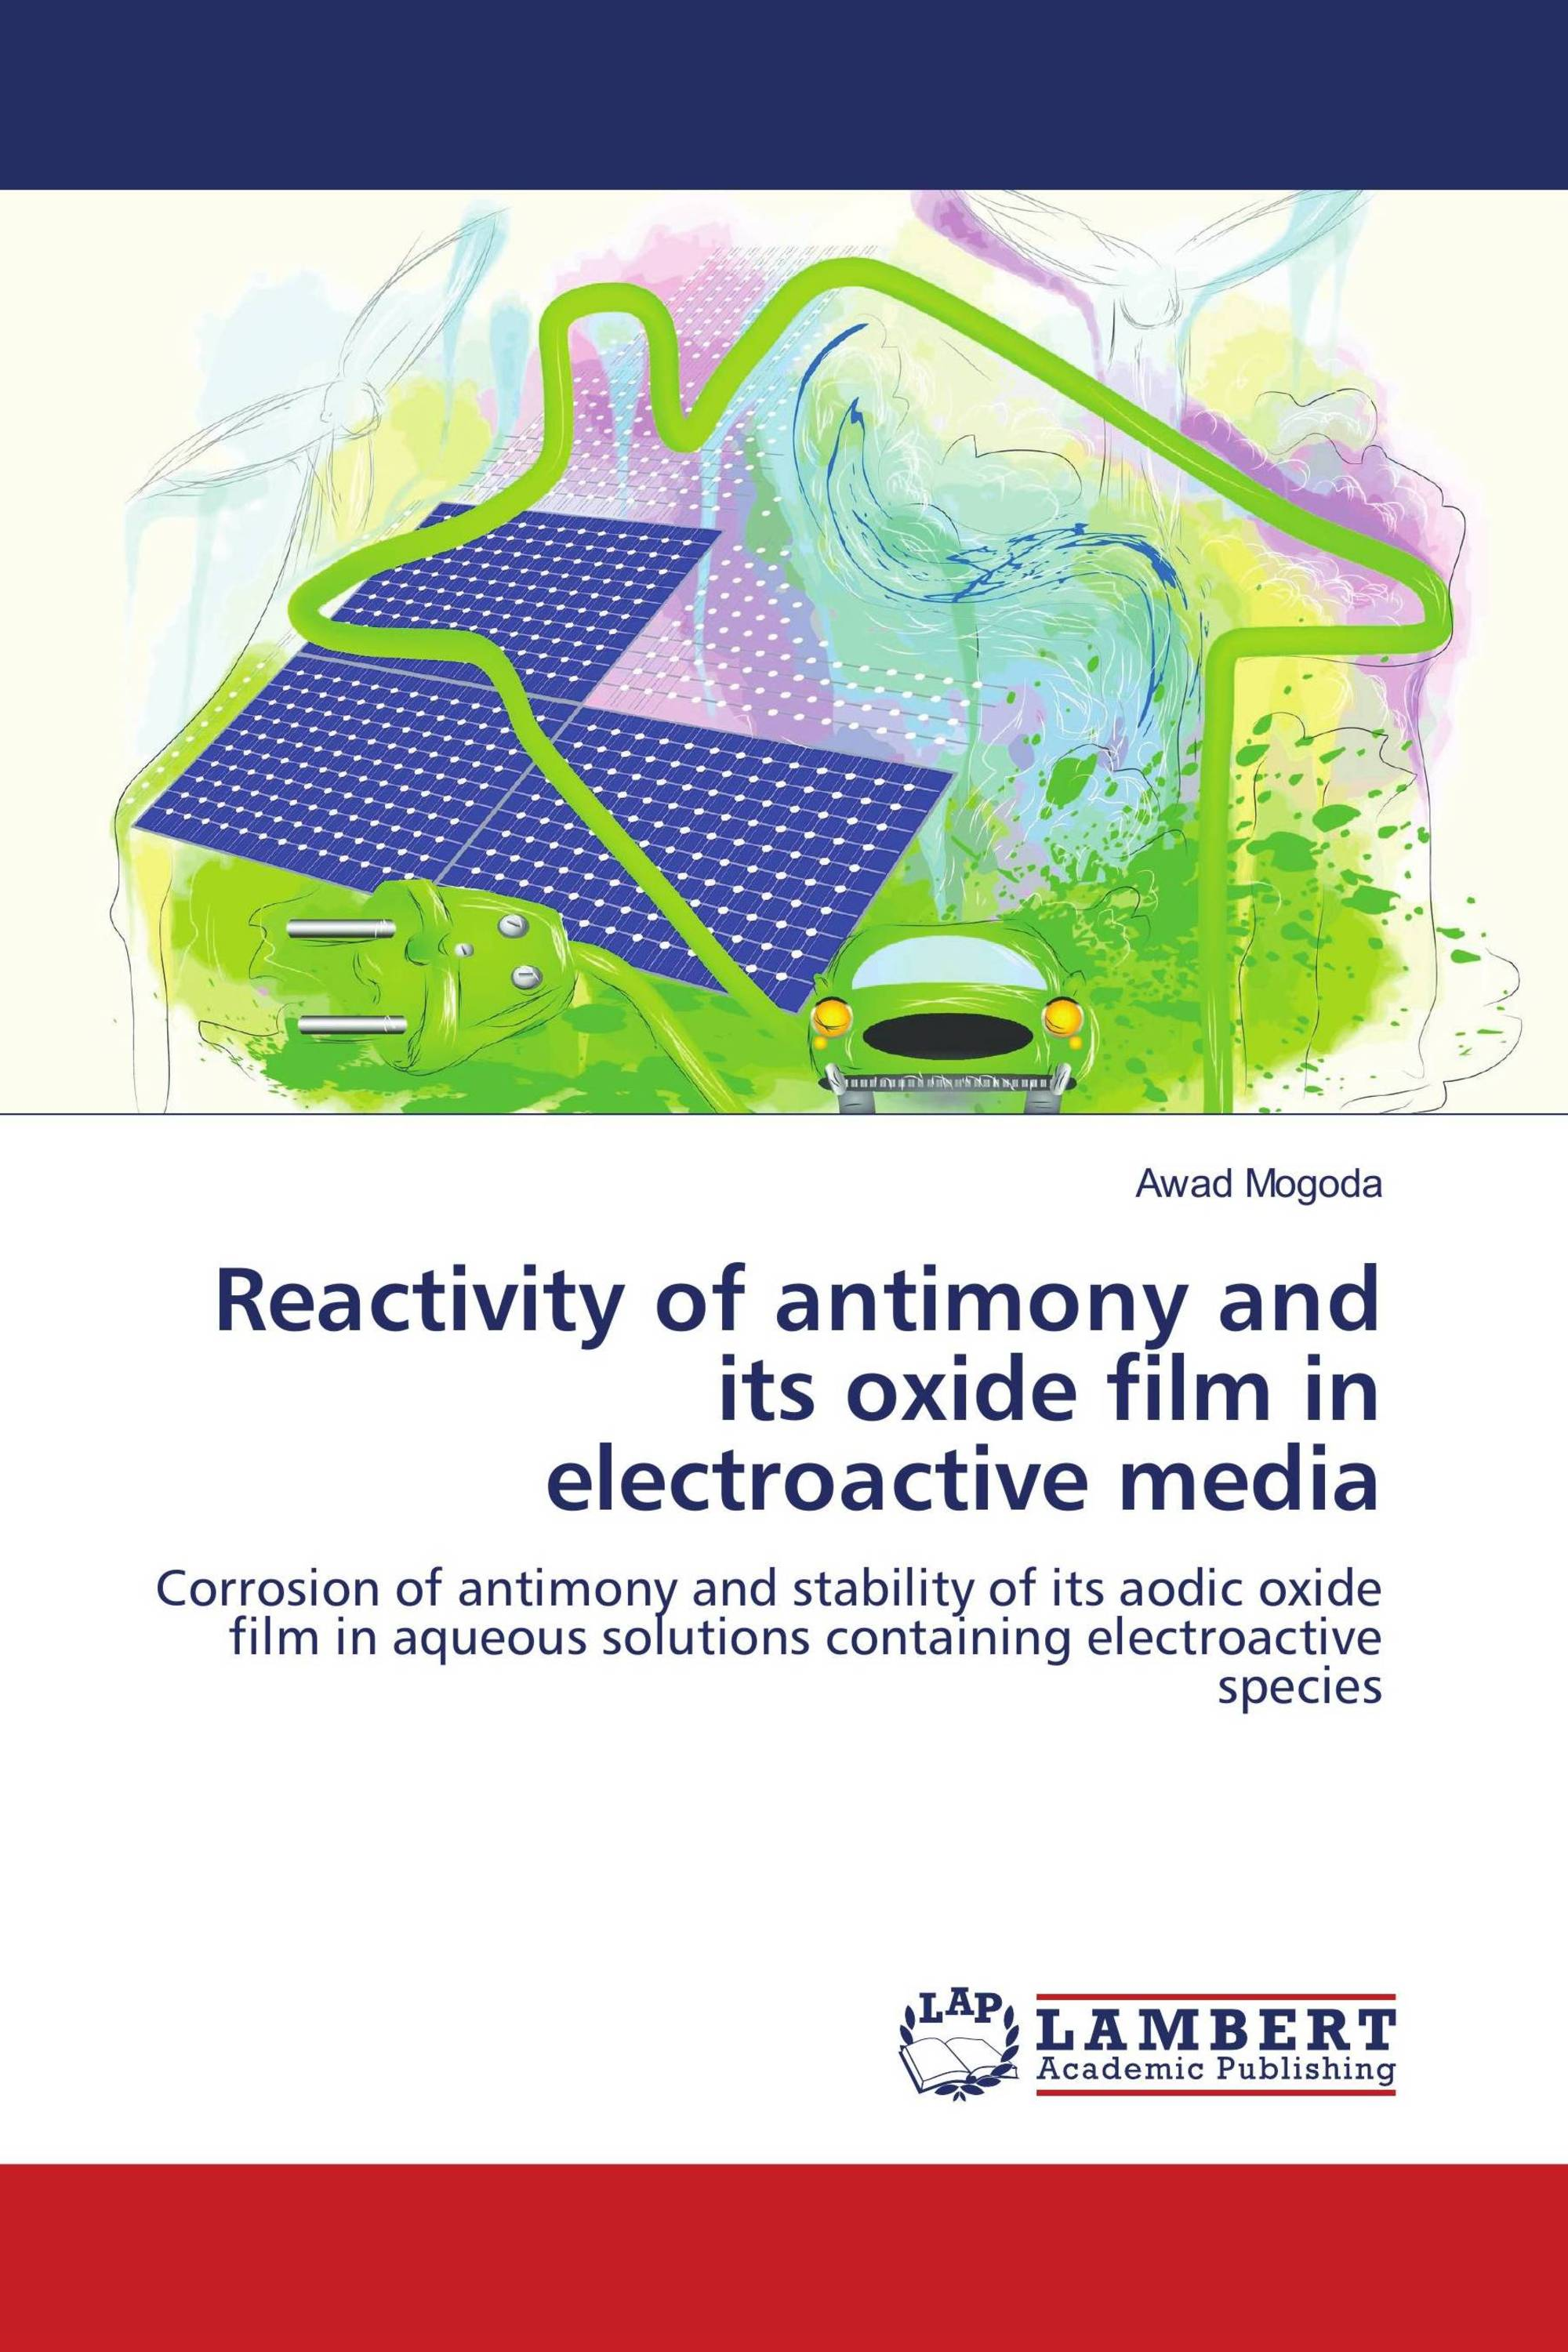 Reactivity of antimony and its oxide film in electroactive